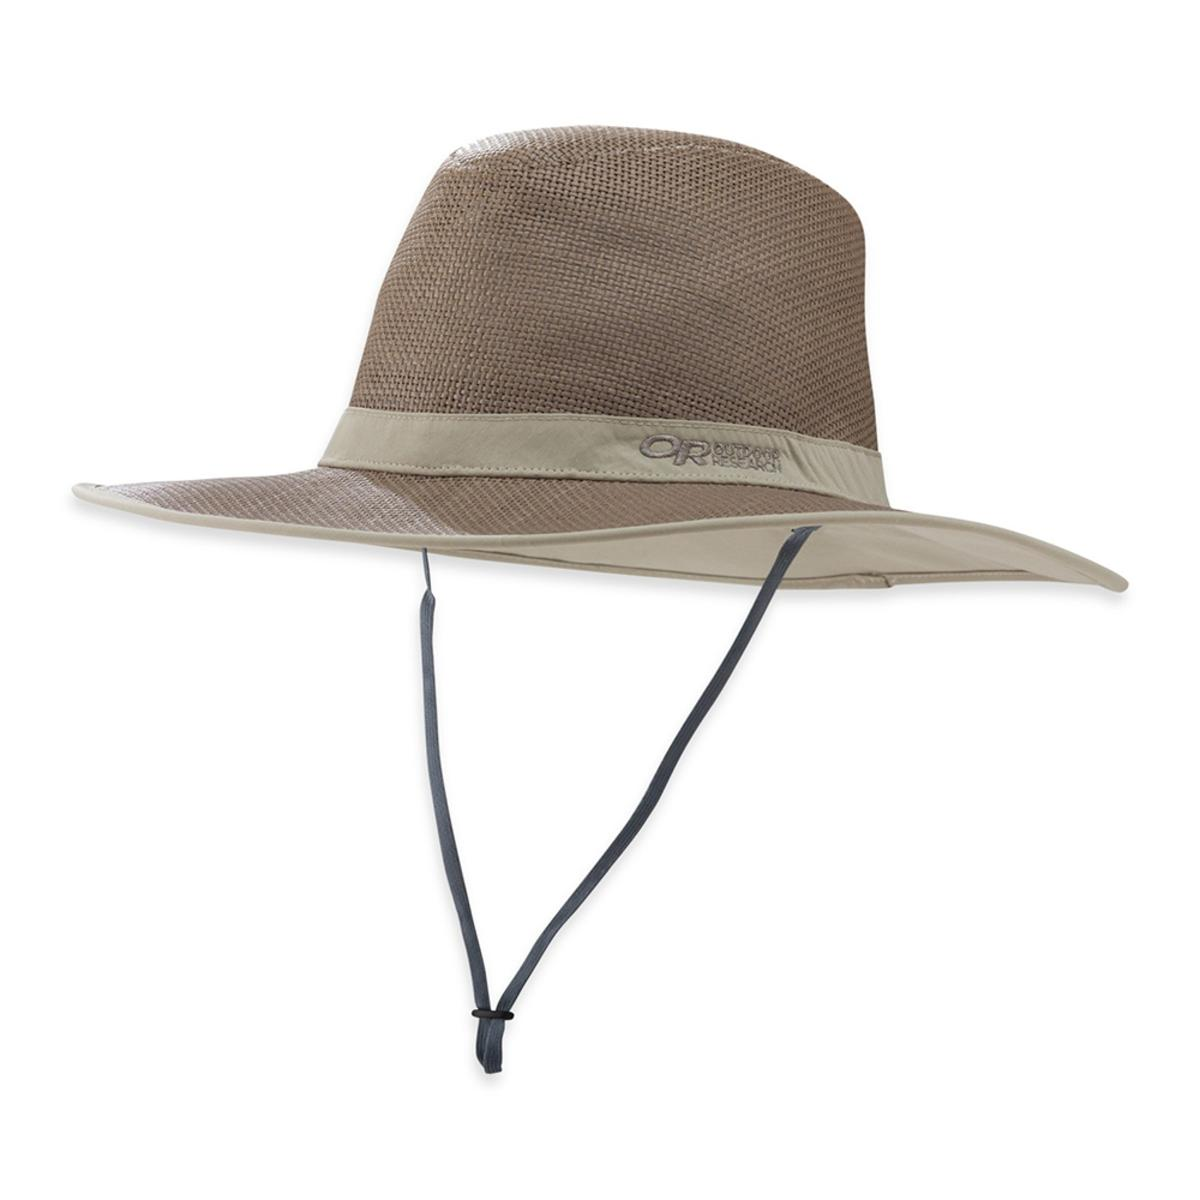 535360d0547cae Outdoor Research Papyrus Brim Sun Hat - My Cooling Store